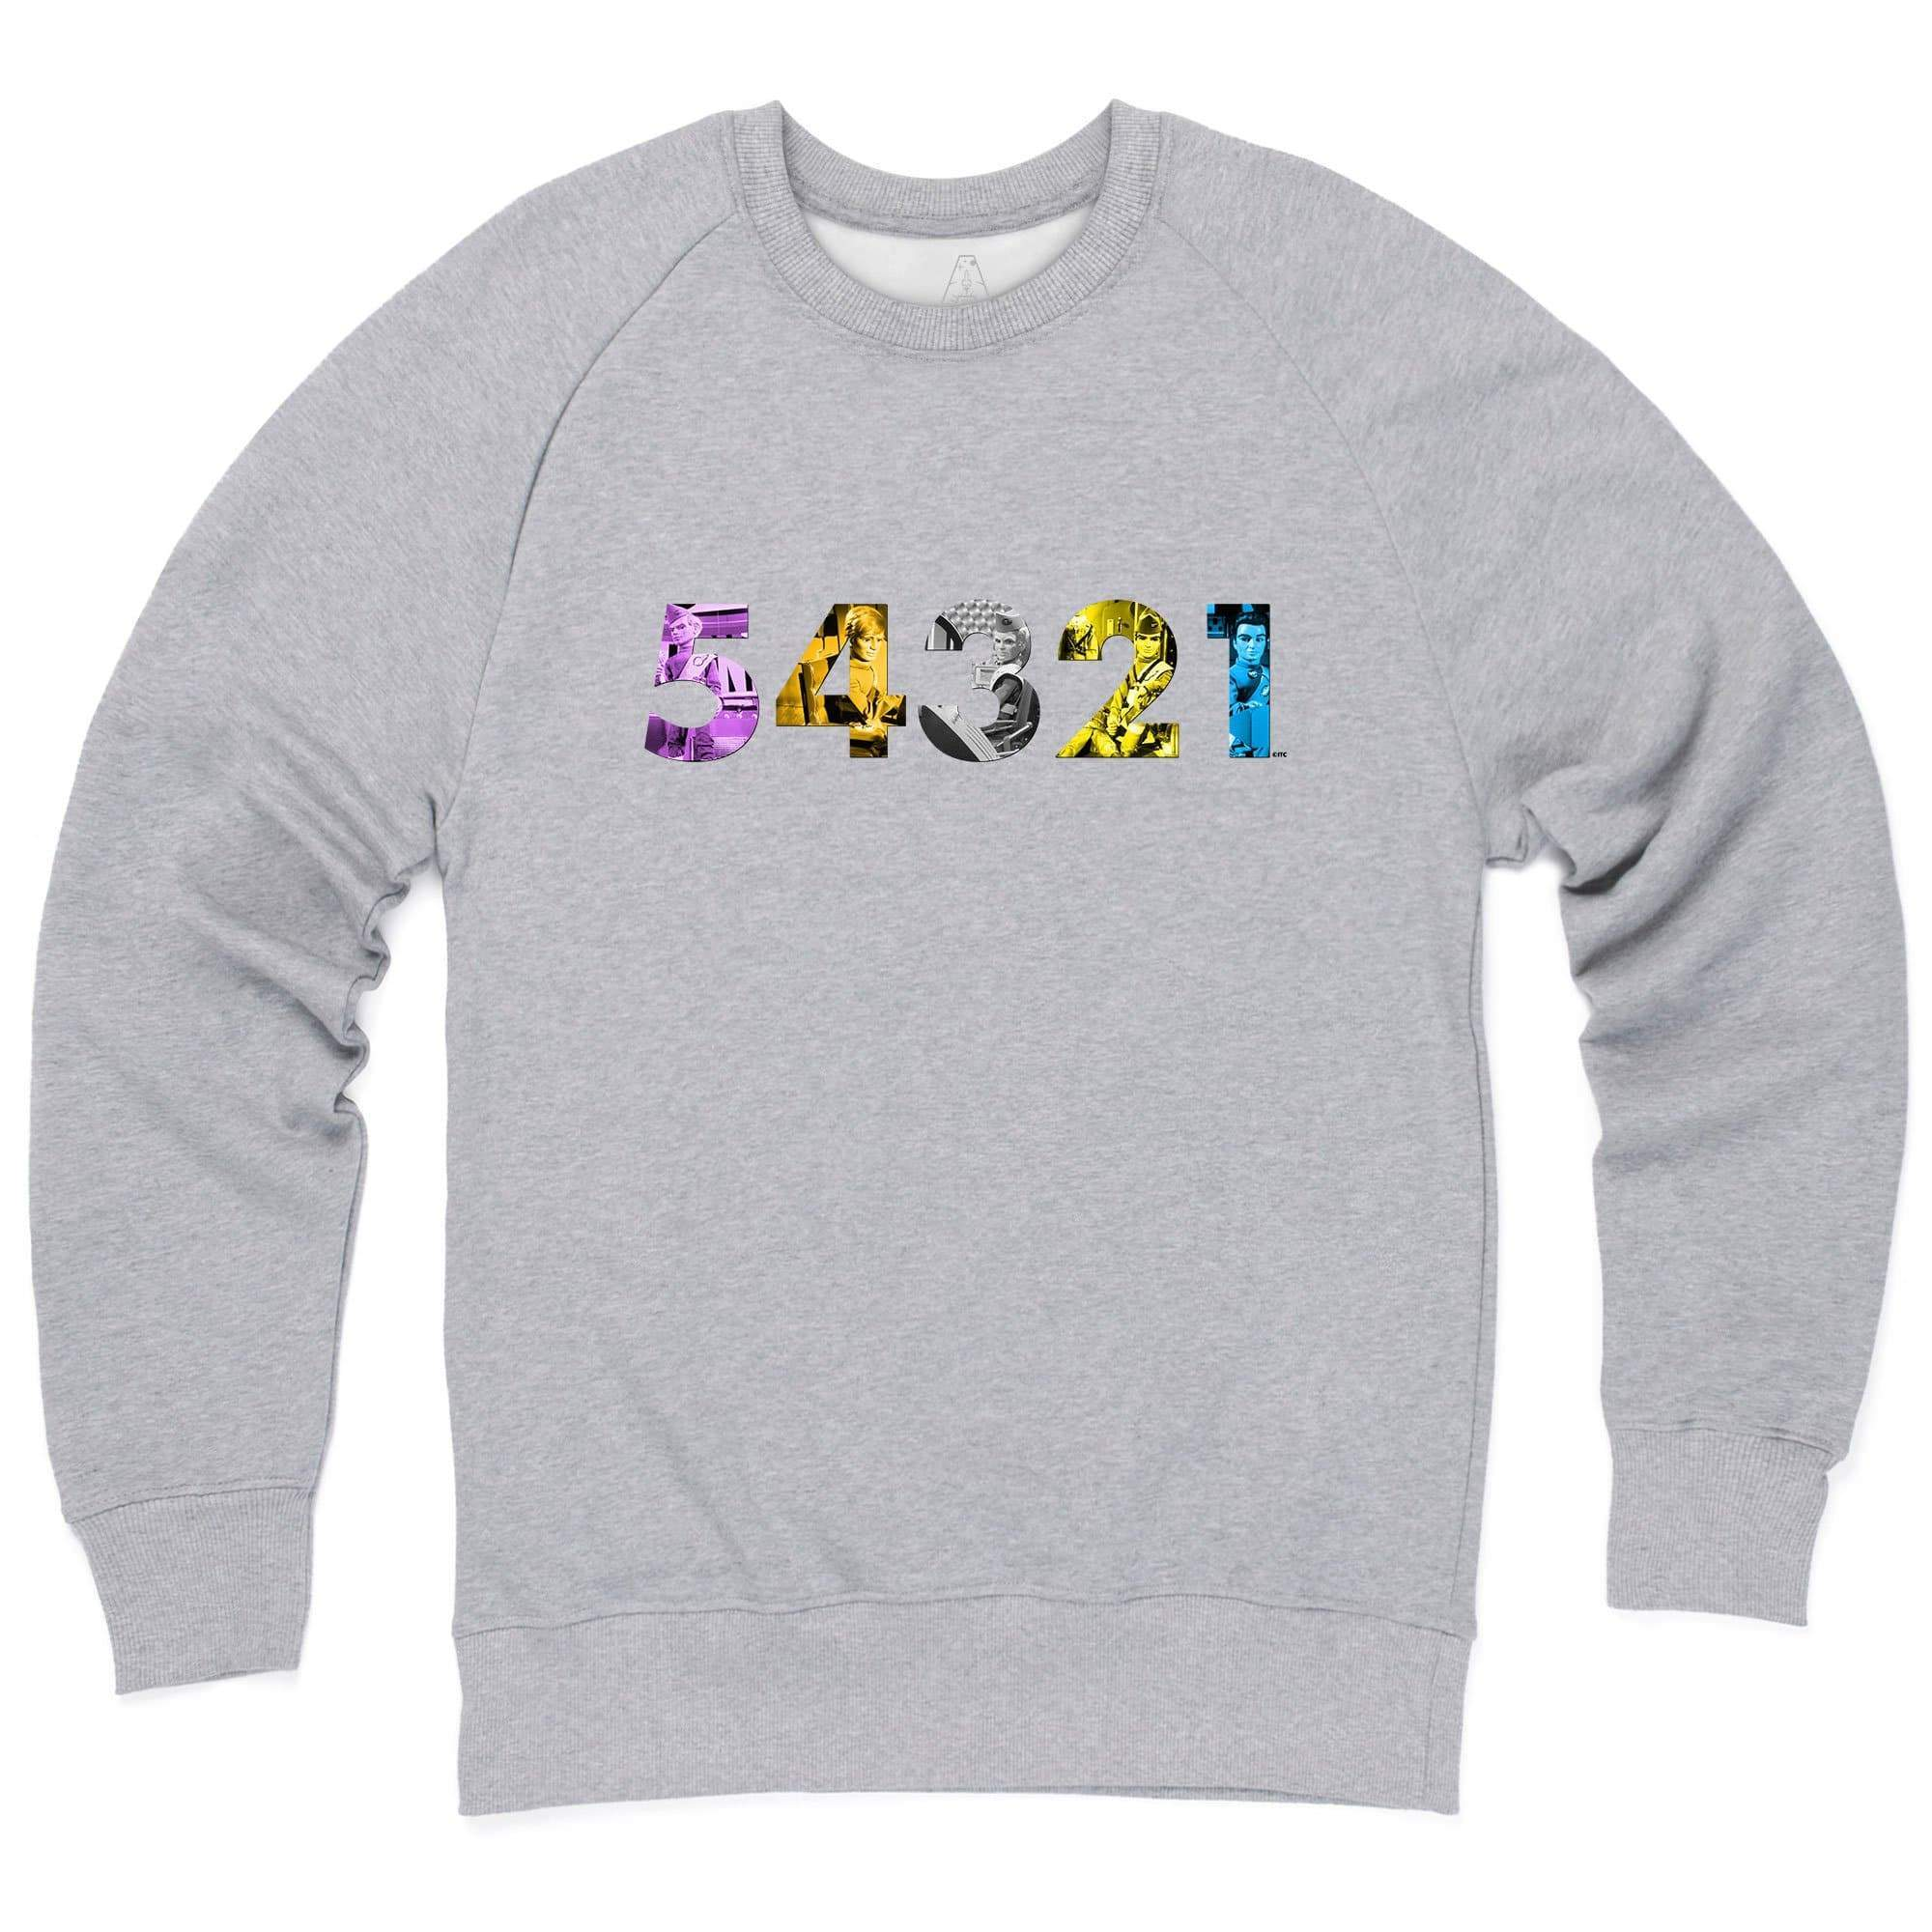 Thunderbirds 54321 Sweatshirt [Official & Exclusive] - The Gerry Anderson Store